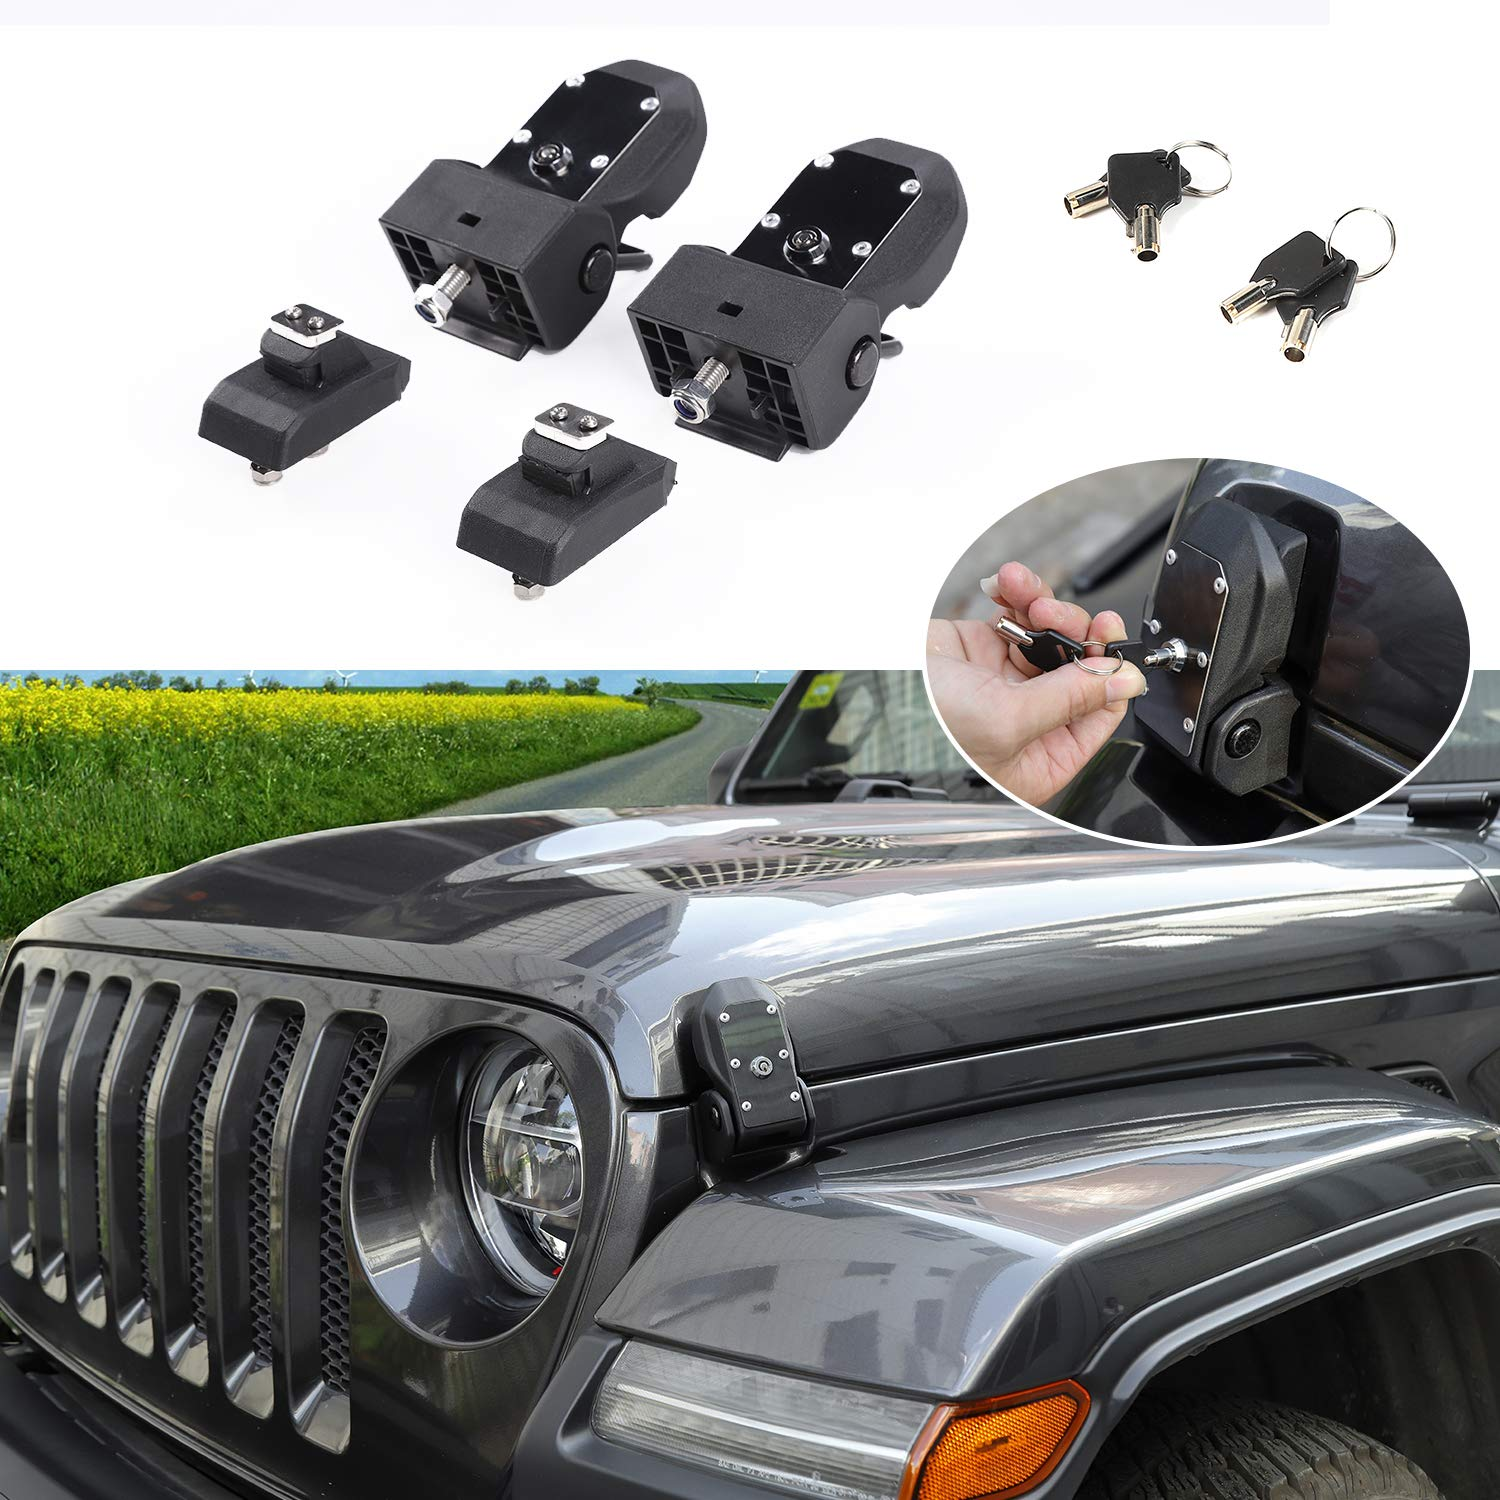 RT-TCZ Original JL Hood Latches Hood Lock Catch Latches Kit for Jeep Wrangler JK JL 2007-2018 (Black) by RT-TCZ (Image #1)